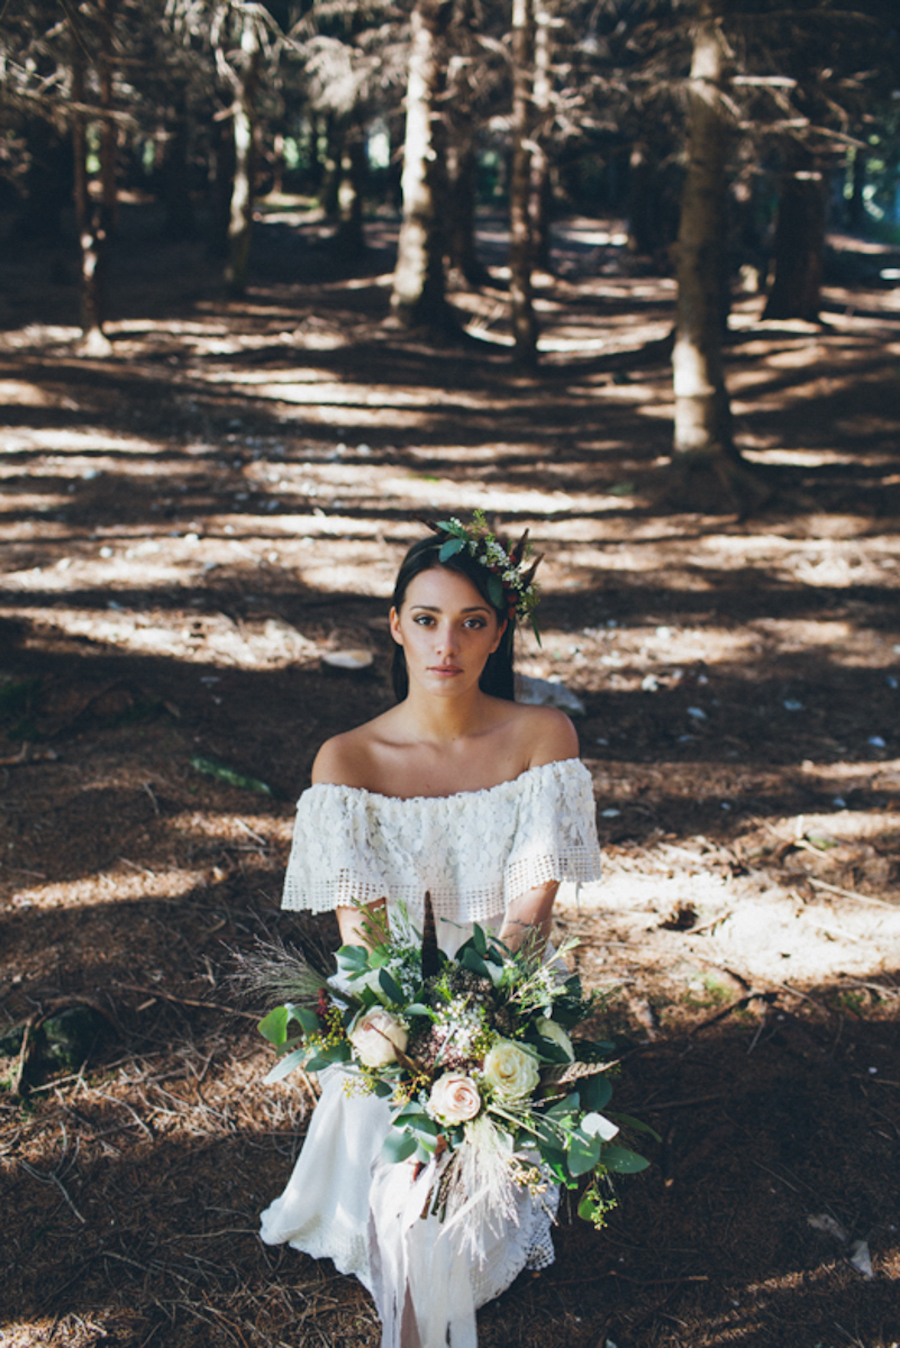 matrimonio-boho-chic-e-naturale-sweetphotofactory-wedding-wonderland-14